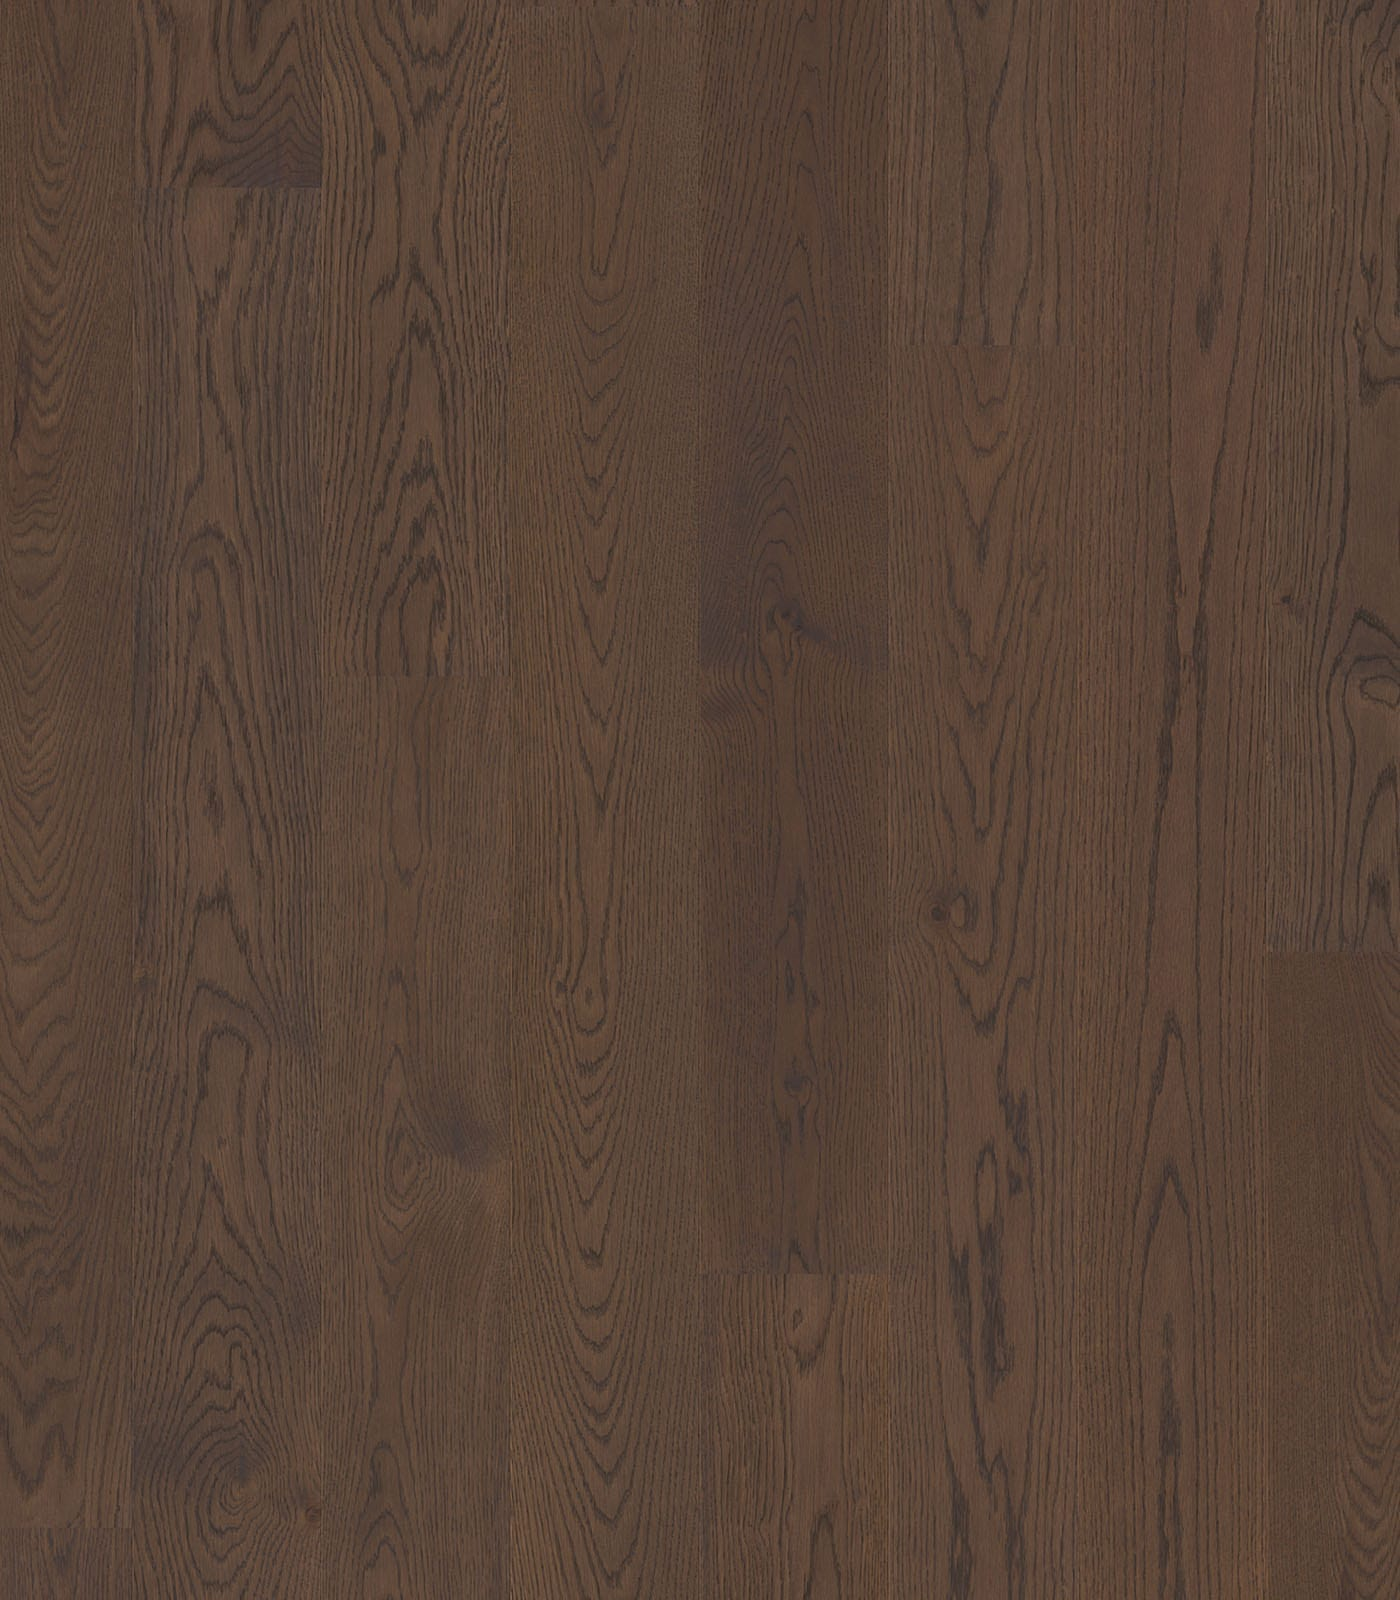 SPC Black Oil-Colors collection-European Oak Floors-flat